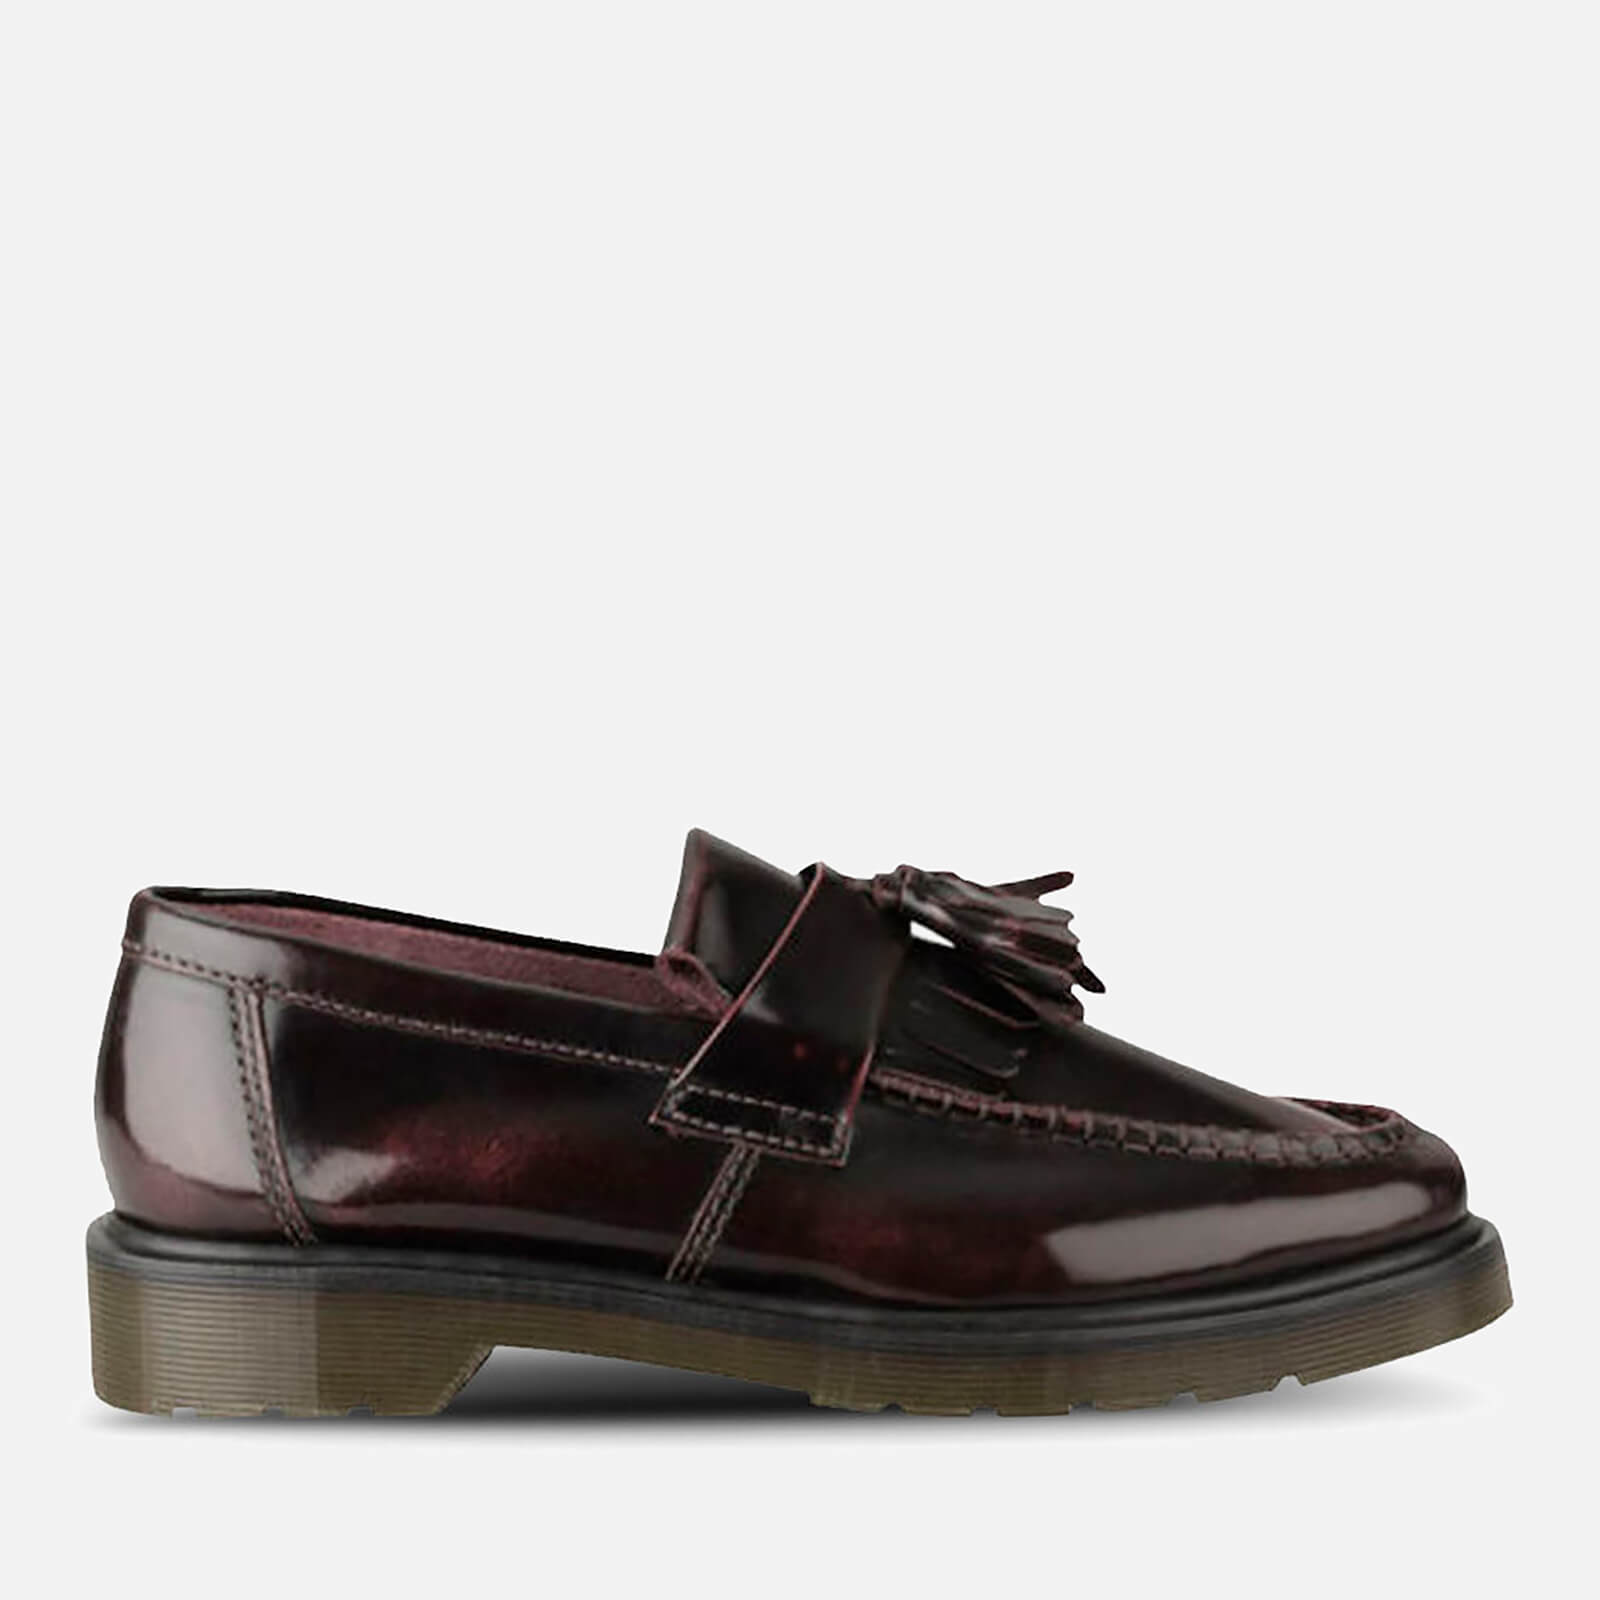 2f7bb7e7388 Dr. Martens Men s Adrian Tassel Leather Loafers - Cherry Red - Free UK  Delivery over £50